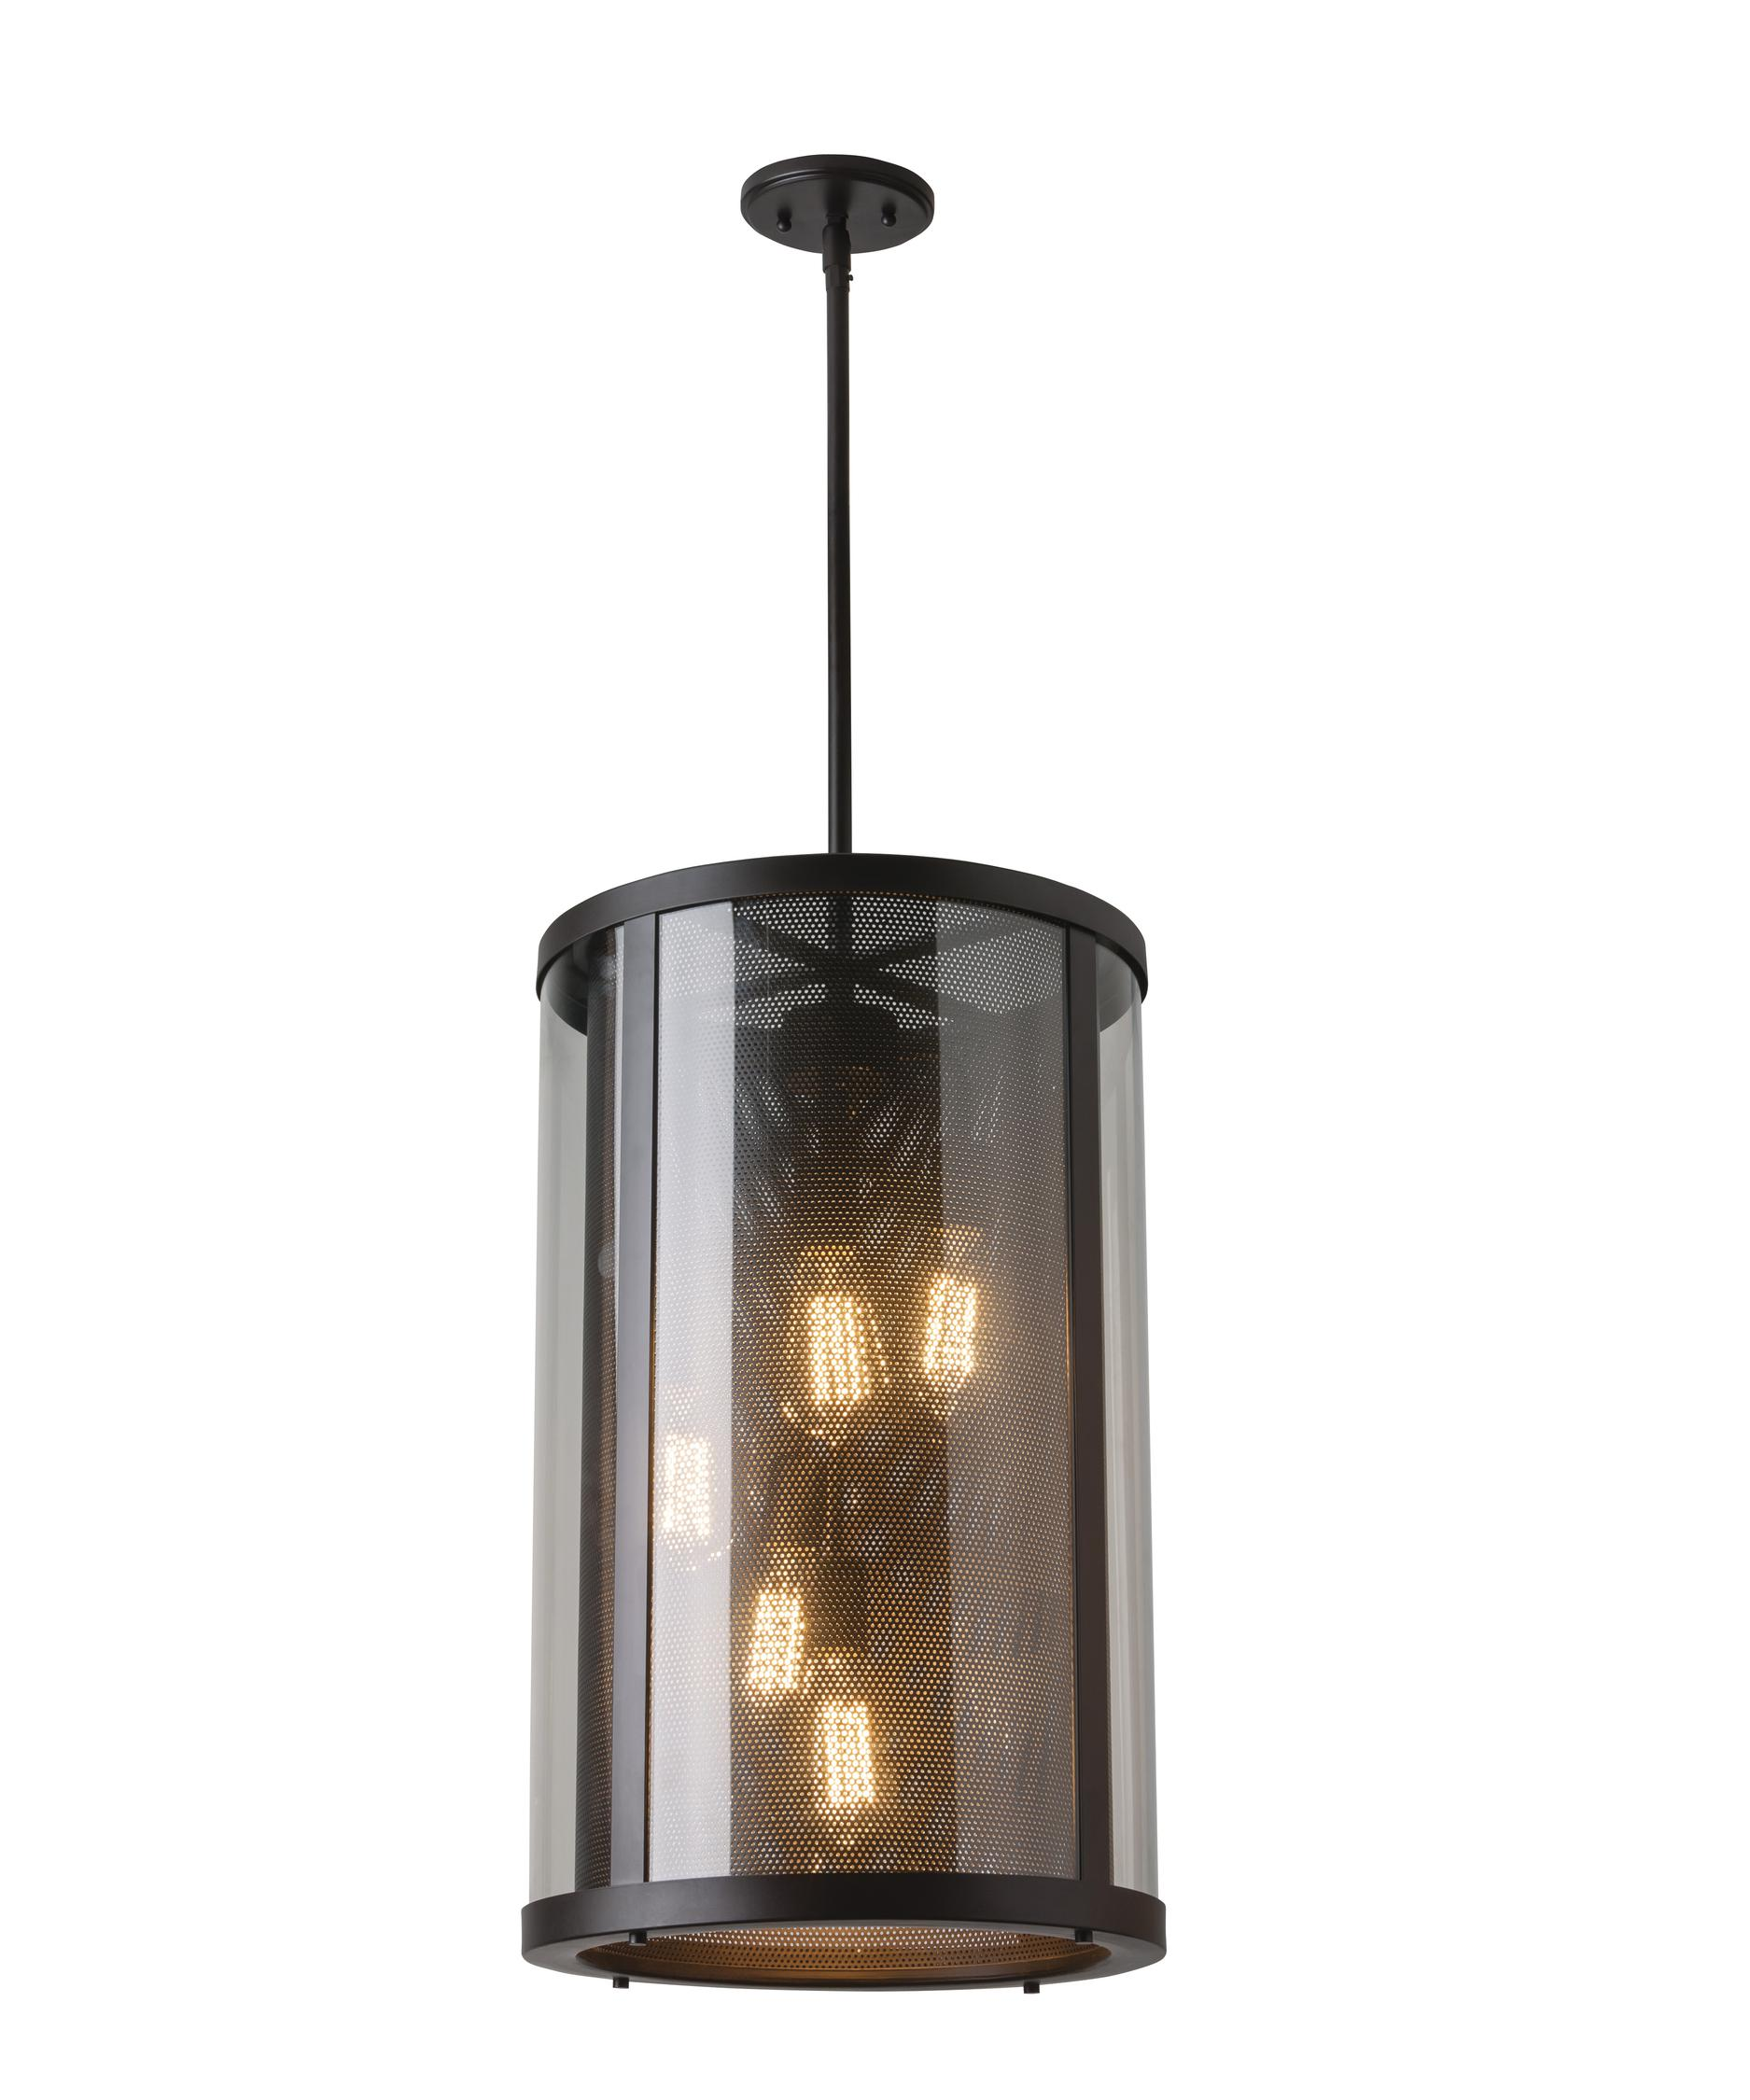 Outdoor hanging lighting - Shown In Oil Rubbed Bronze Finish And Clear Glass